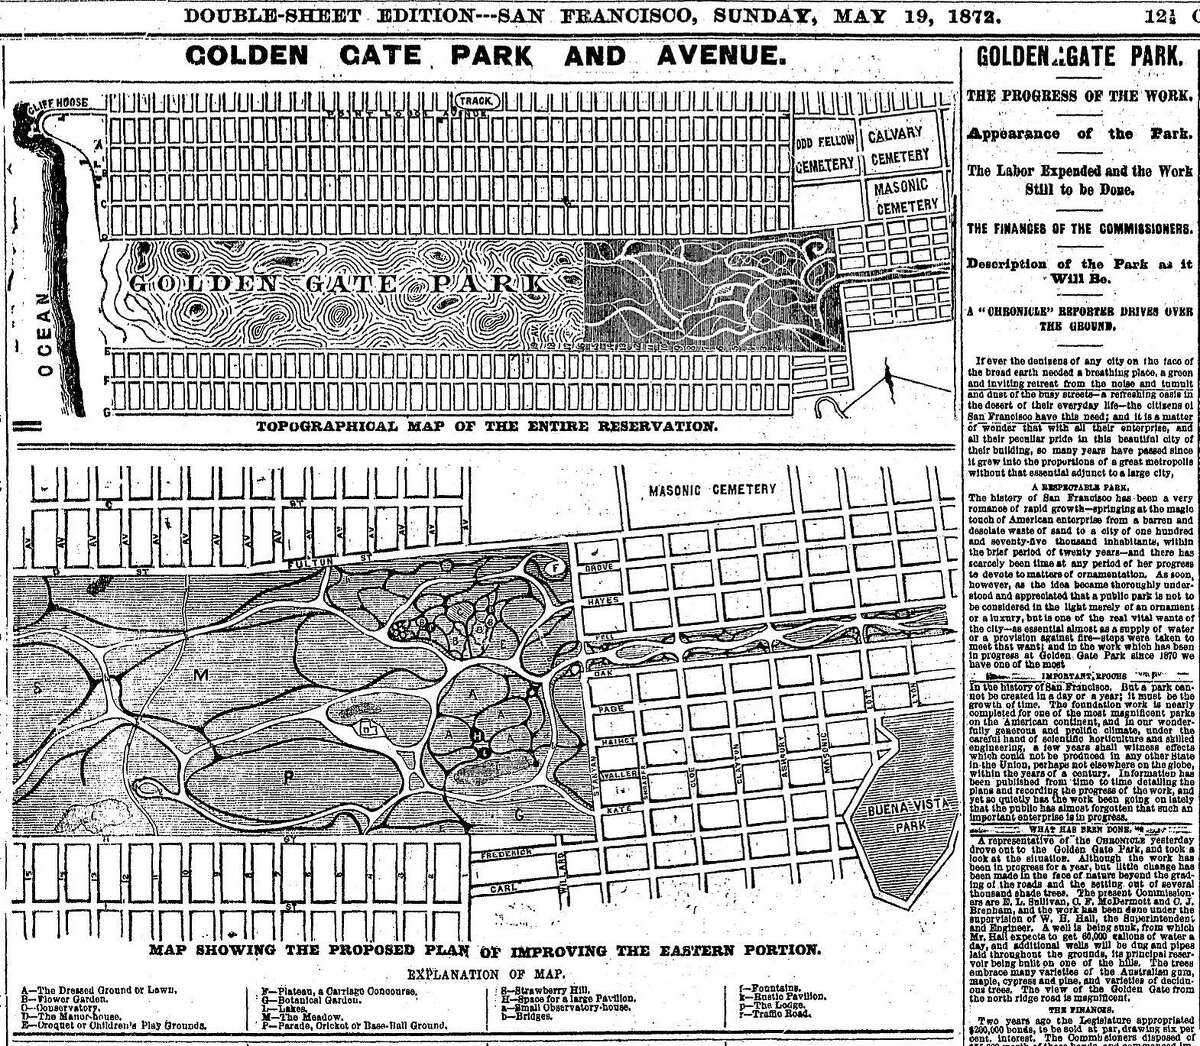 A May 19, 1872 Chronicle map and article shows the plans for Golden Gate Park